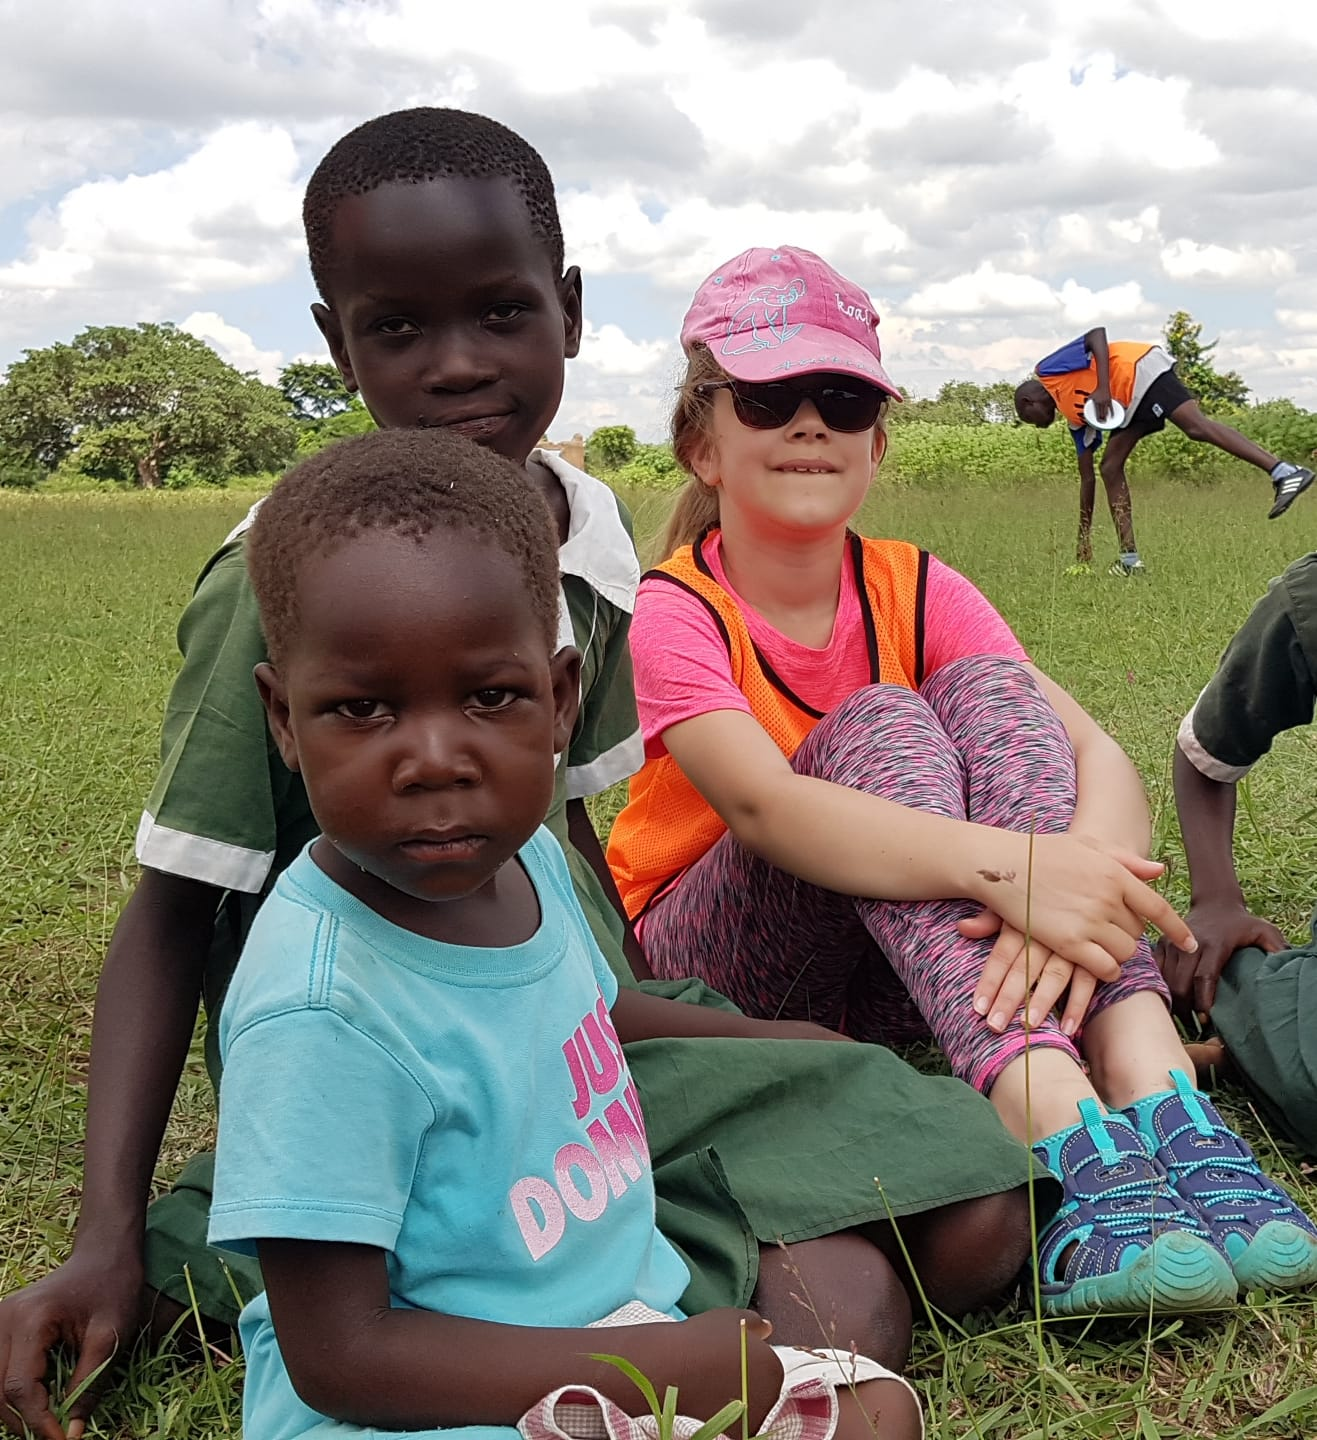 Children of aid worker taken to Uganda